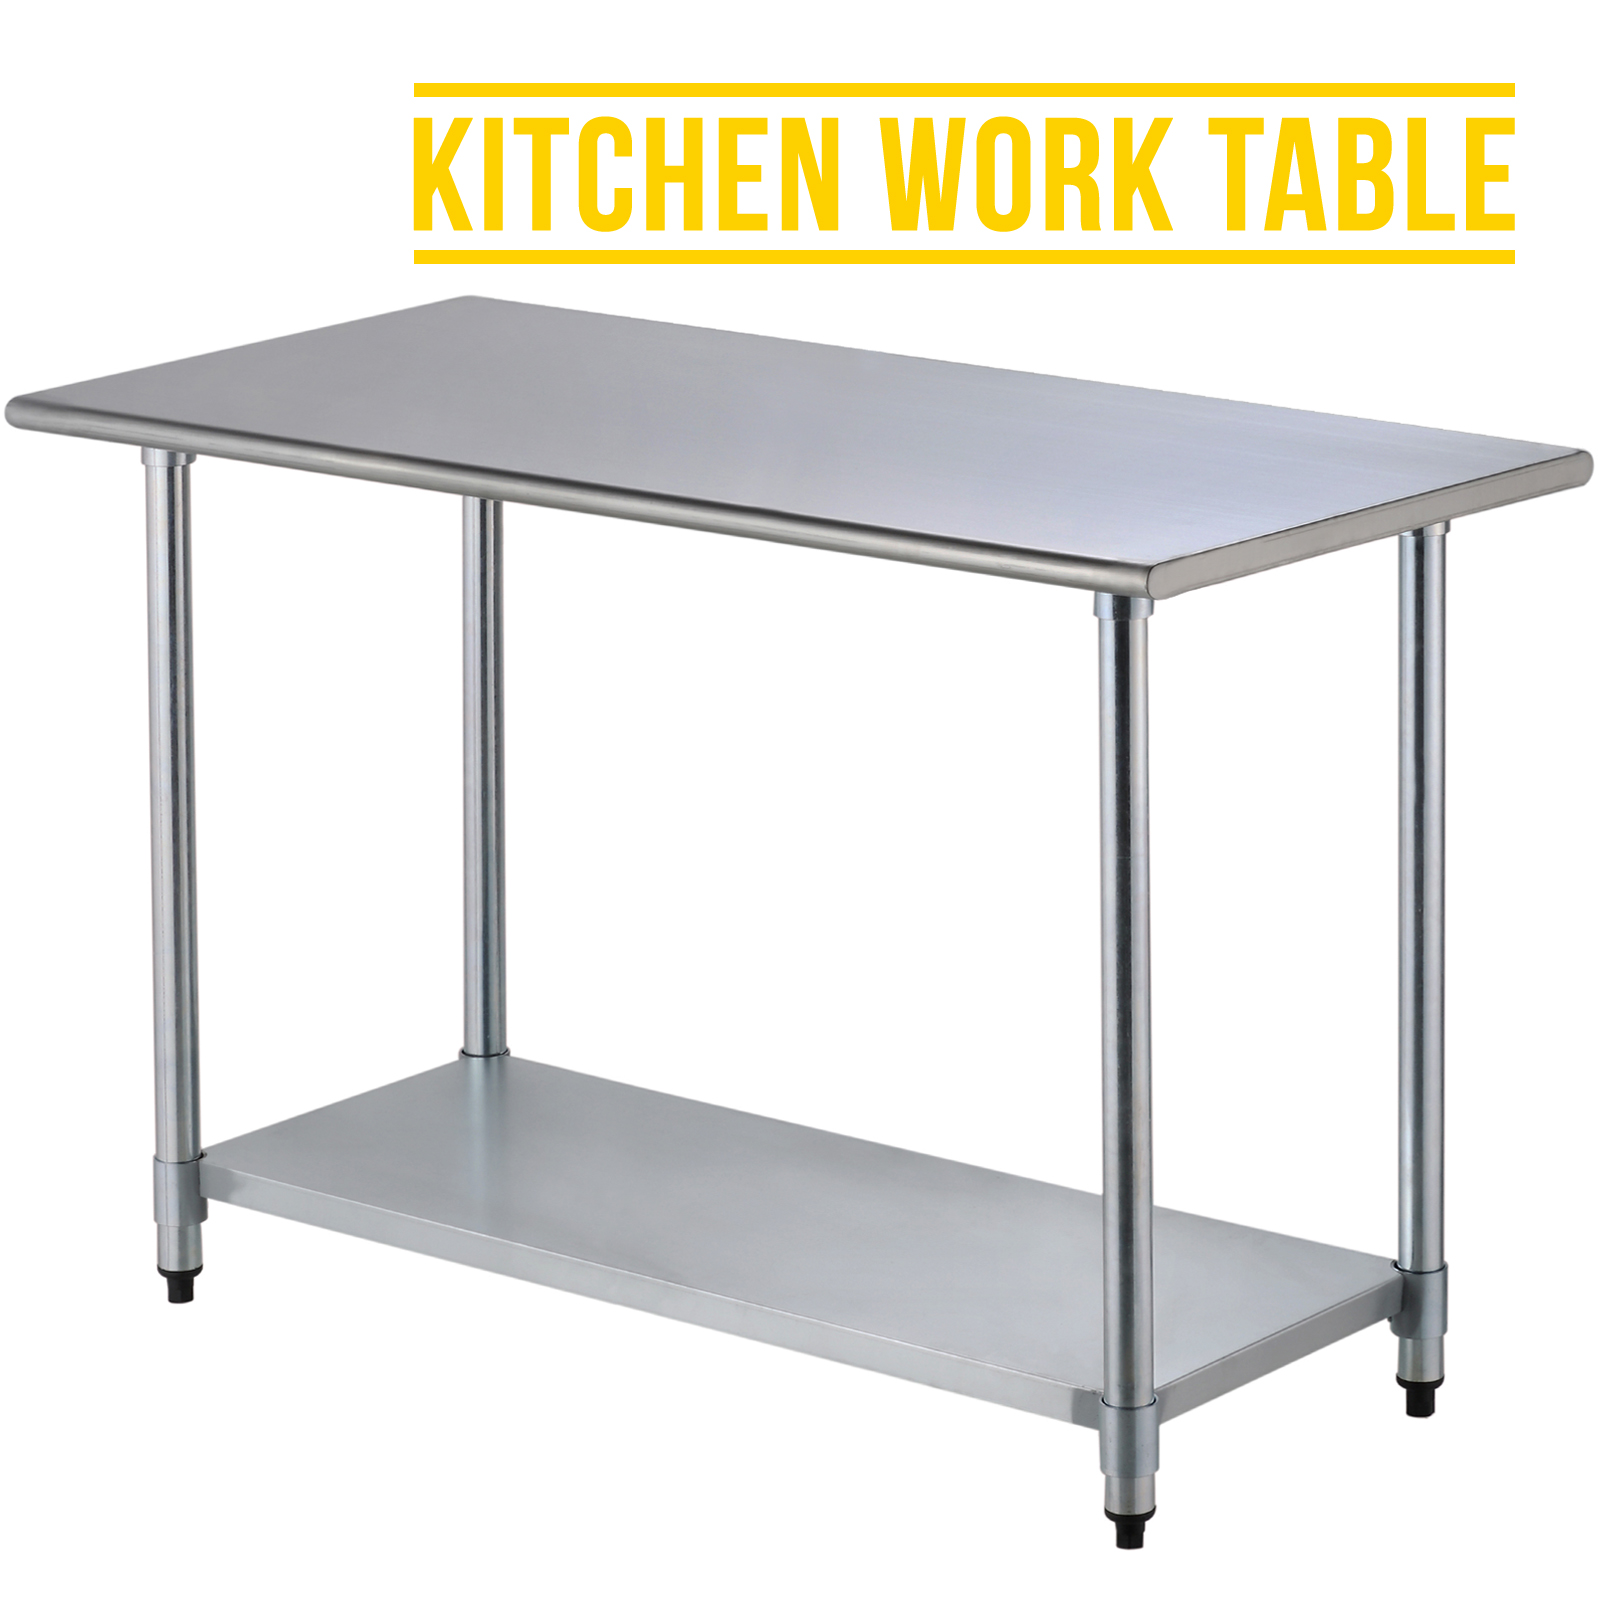 2ft 5ft commercial stainless steel kitchen restaurant work prep table ebay - Industrial kitchen table stainless steel ...